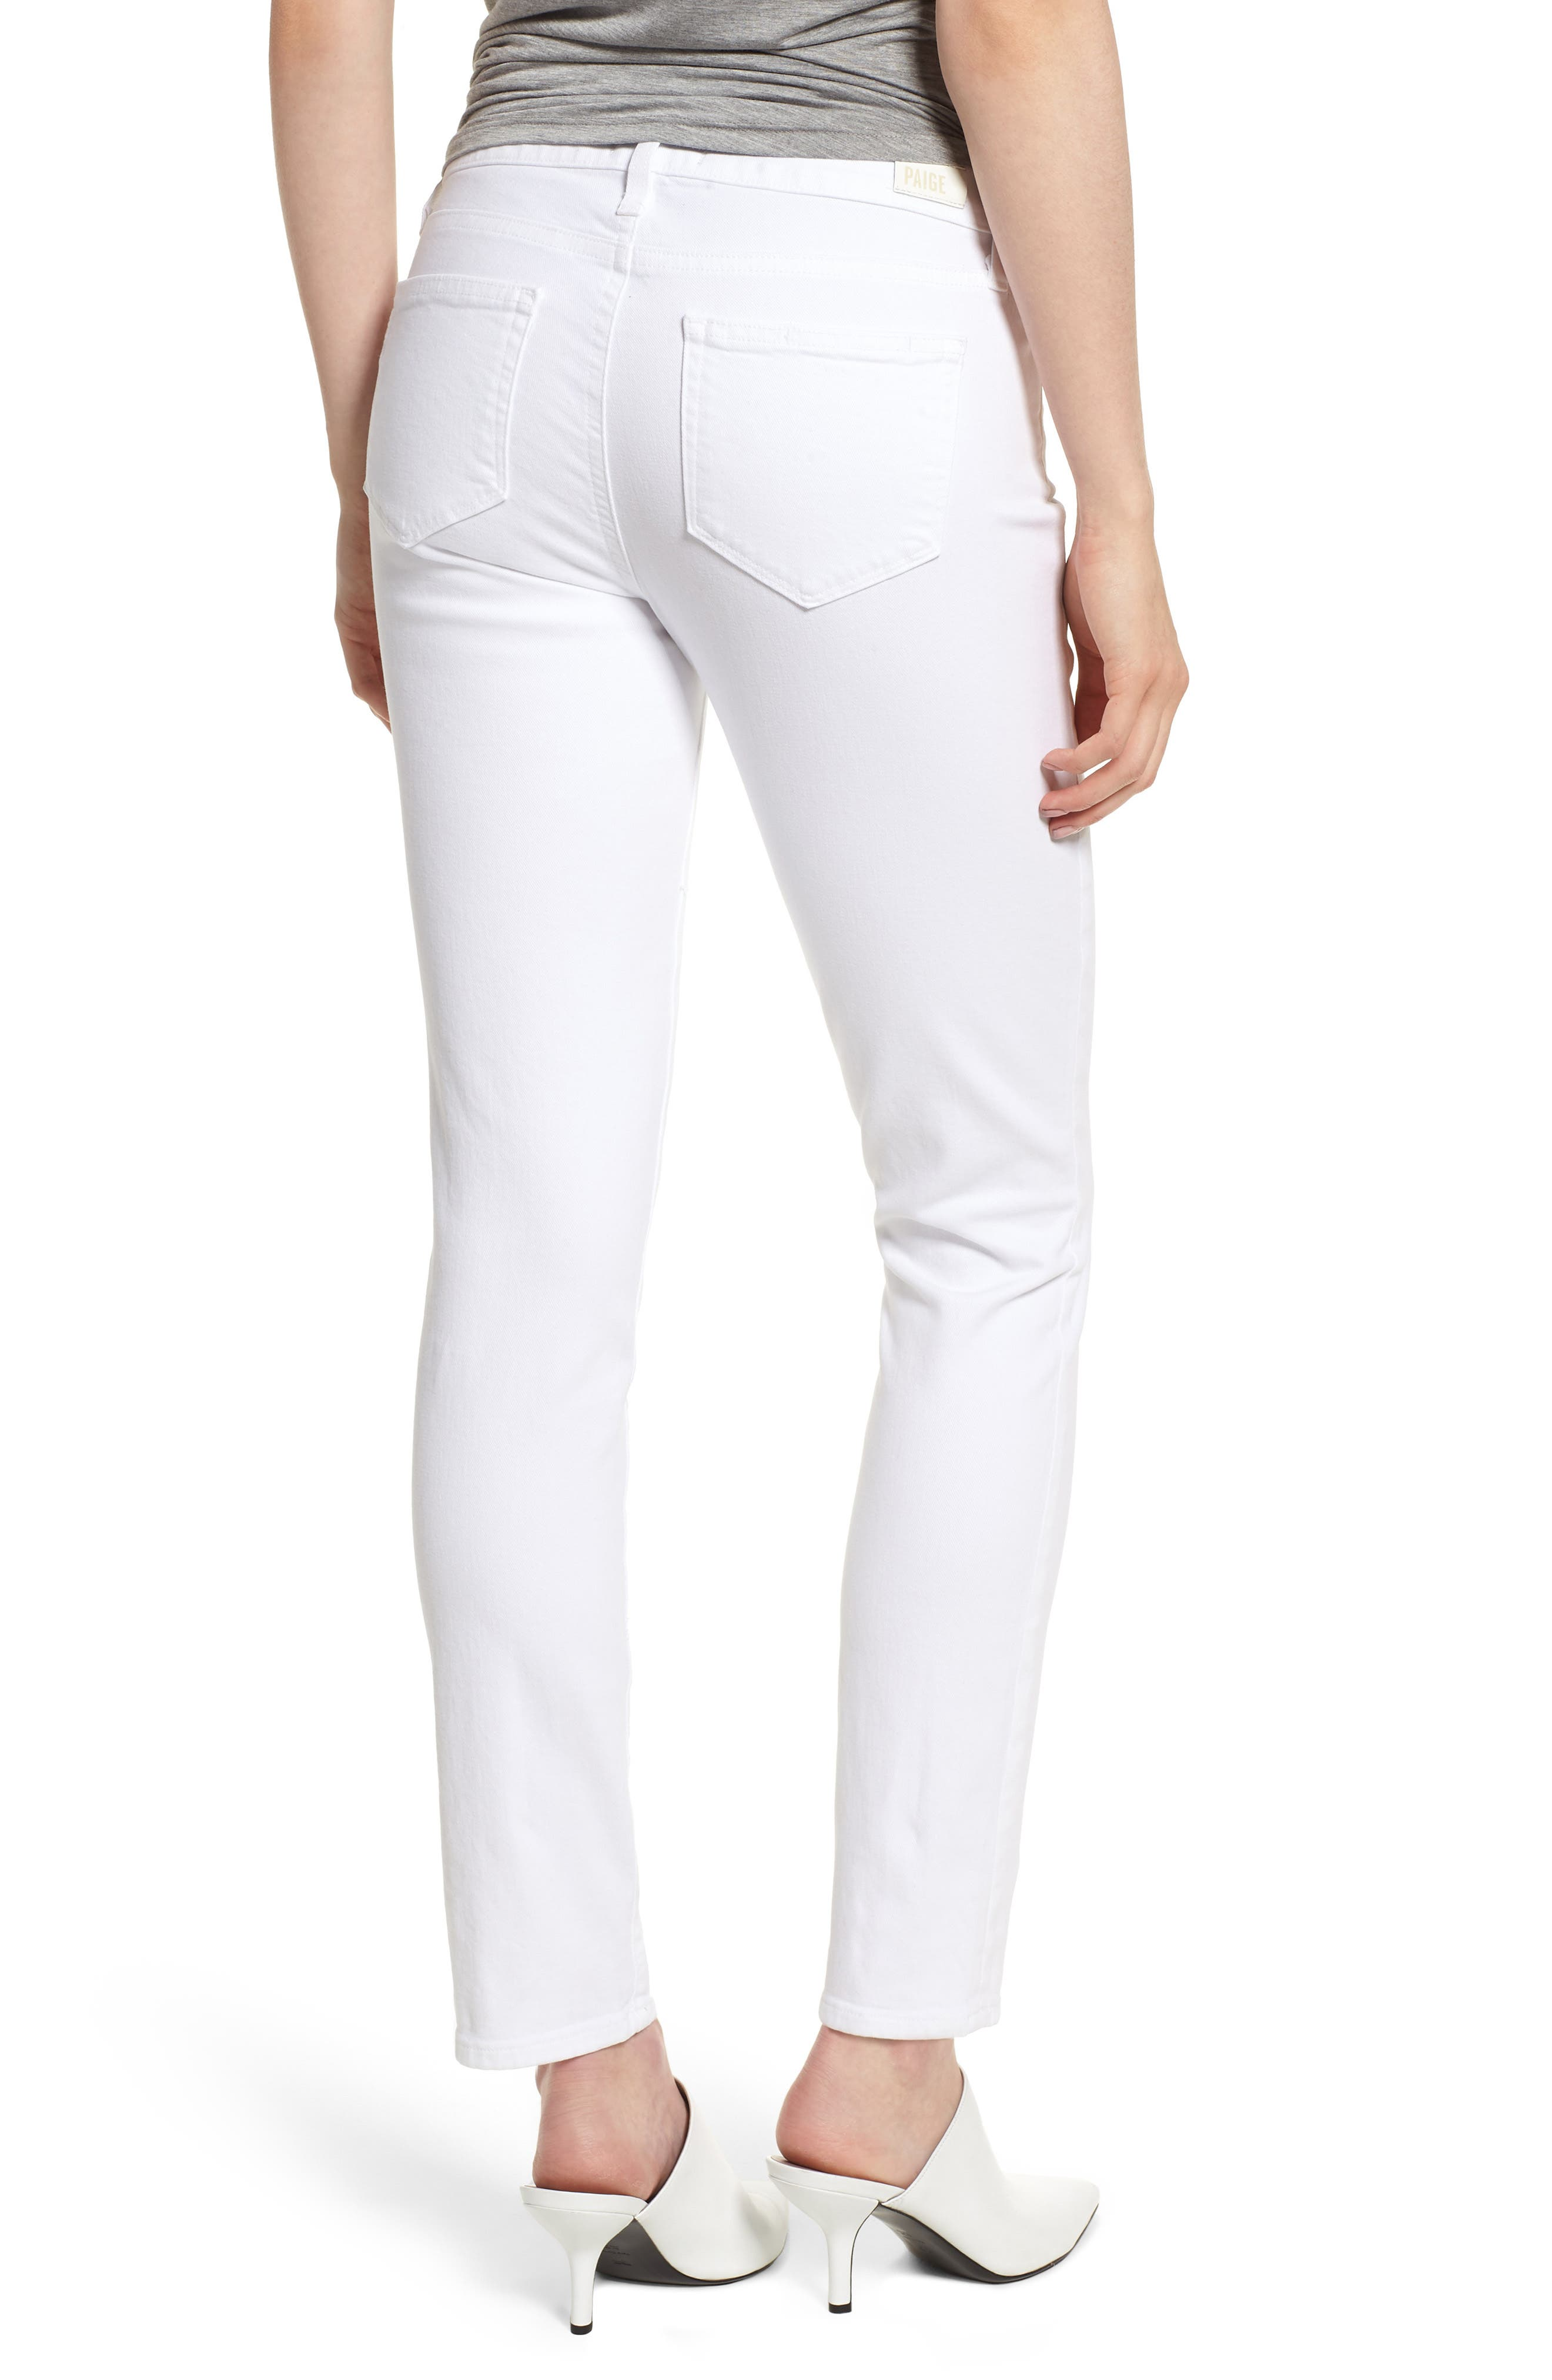 Skyline Ankle Peg Skinny Jeans,                             Alternate thumbnail 2, color,                             CRISP WHITE